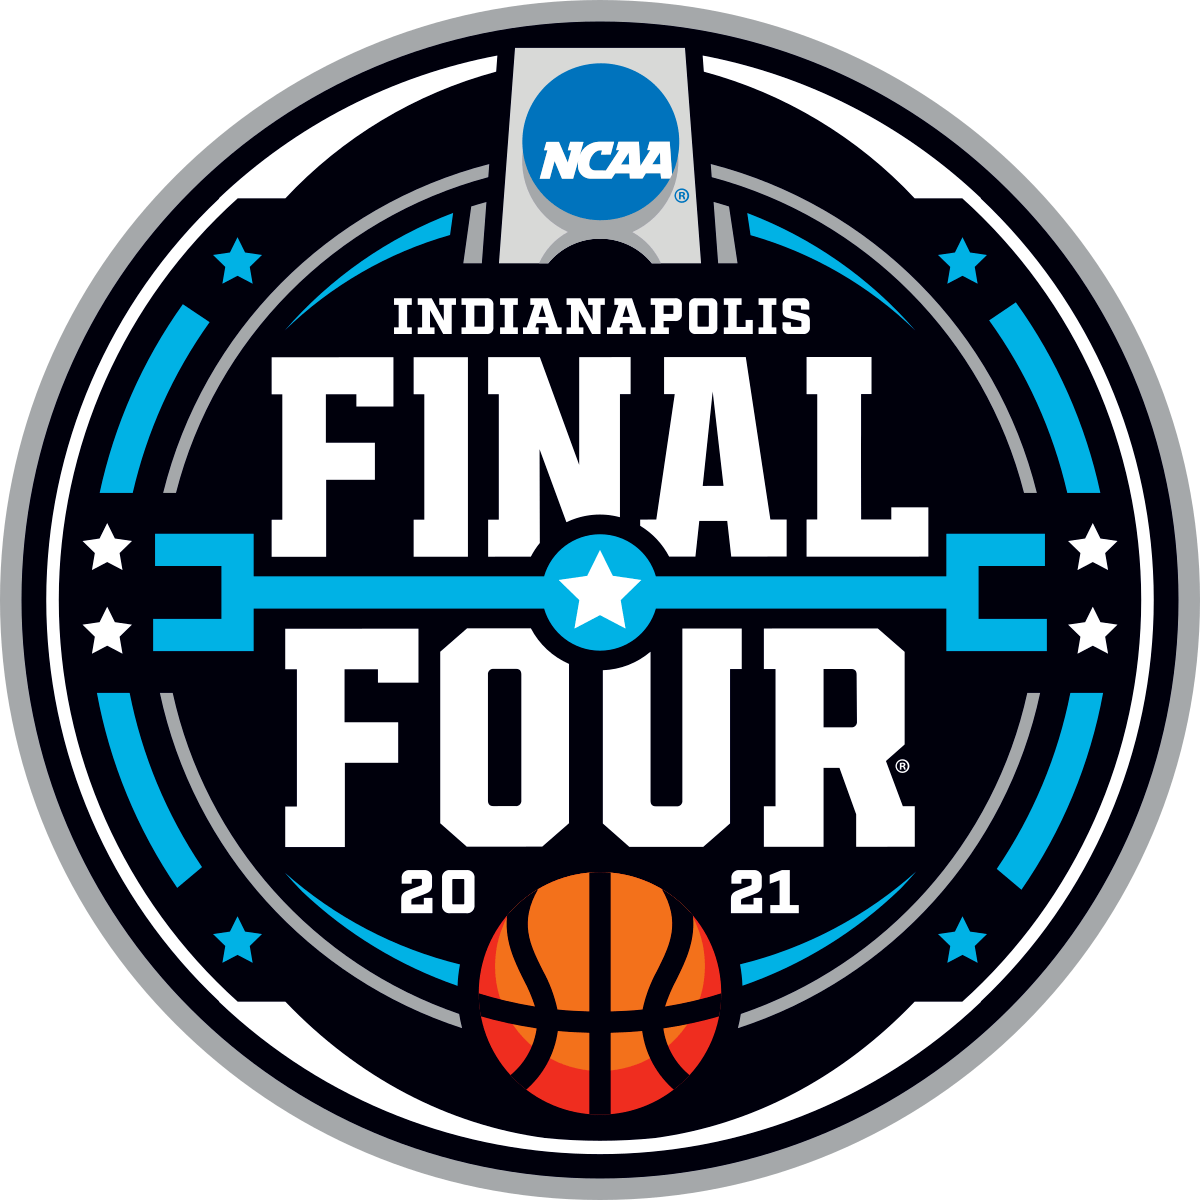 NCAA Tournament moved to Indianapolis